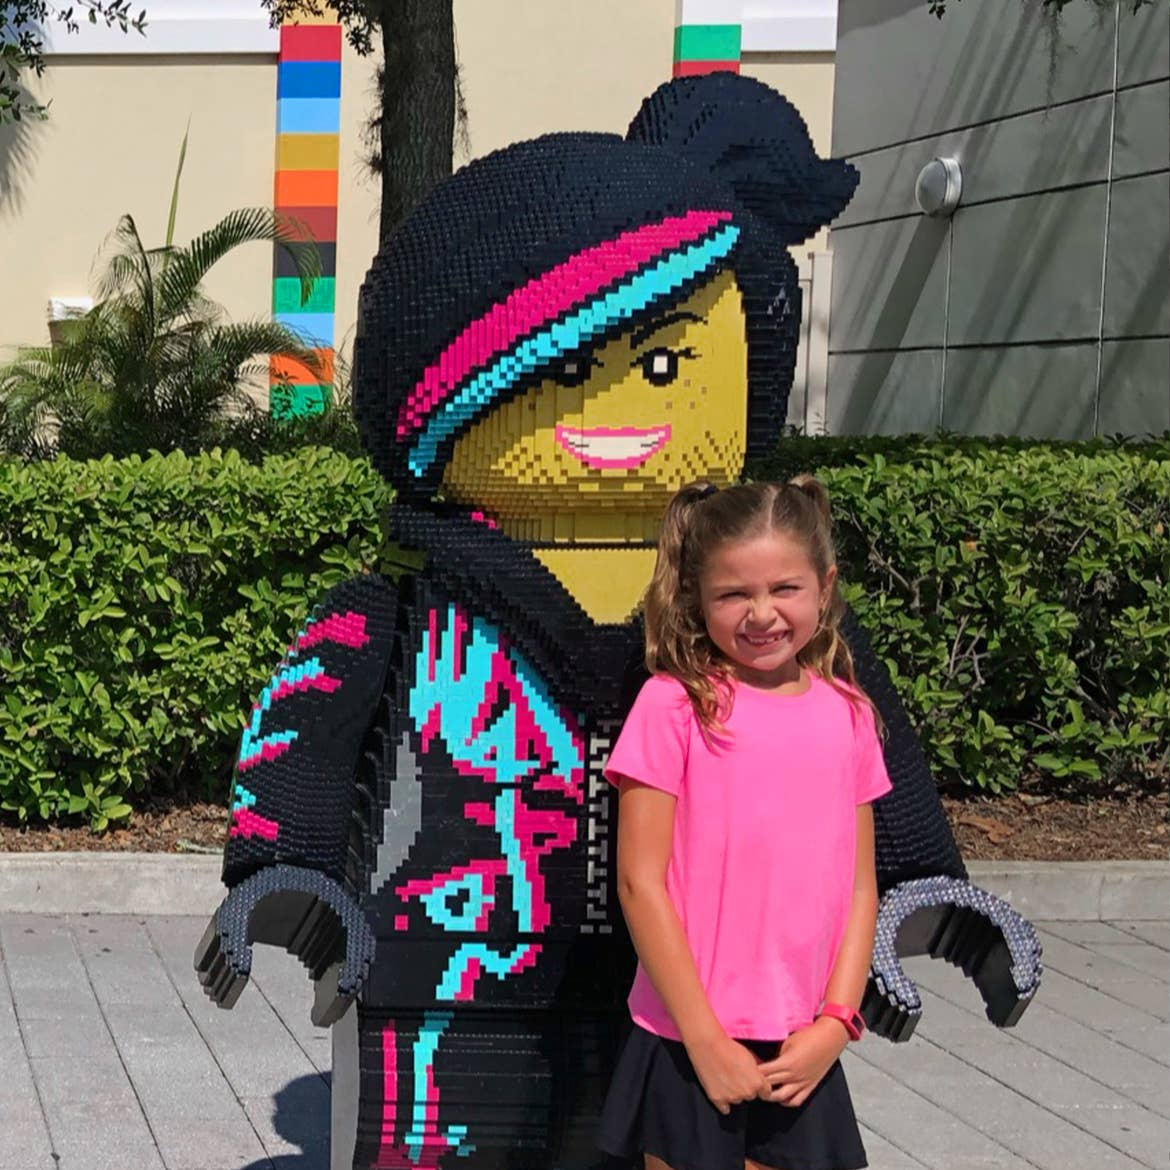 A young girl in a pink t-shirt (right) stands next to an oversized LEGO figure.